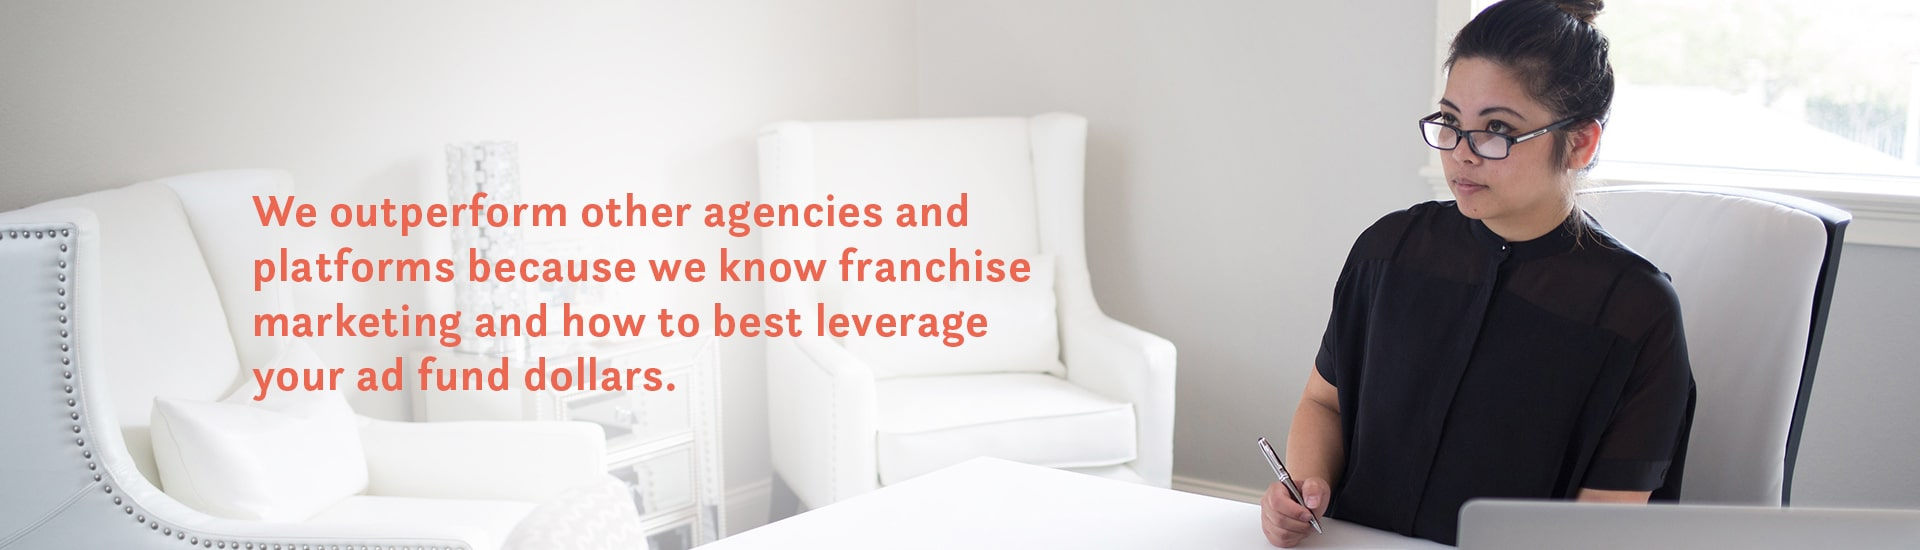 We outperform other agencies and platforms because we know franchise marketing and how to best leverage your ad fund dollars.